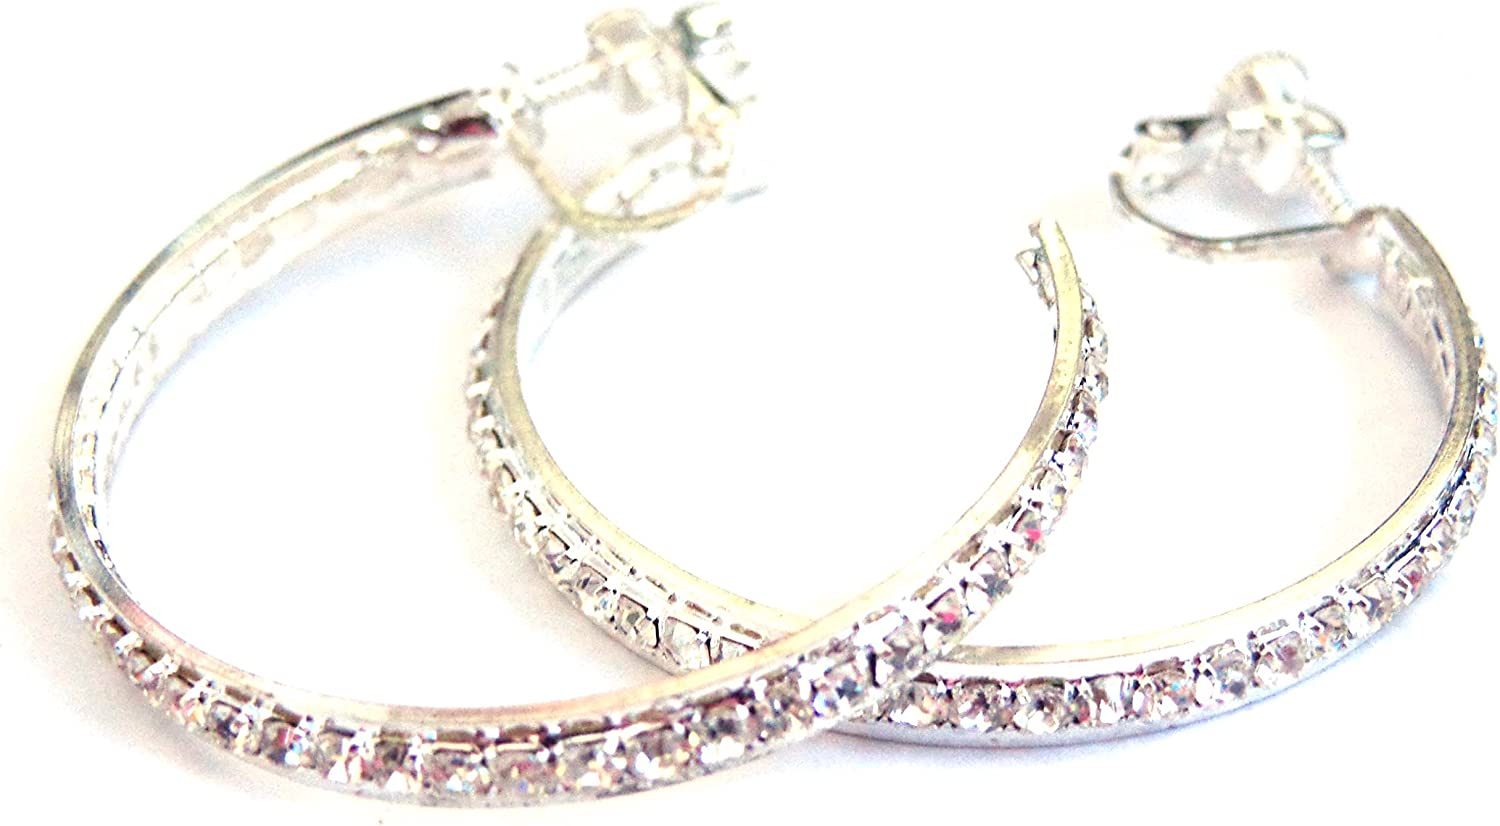 Clip on Earrings Silver Special sale item Tone Hoop Crystal 1.5 Rhinestone Lined Inventory cleanup selling sale i